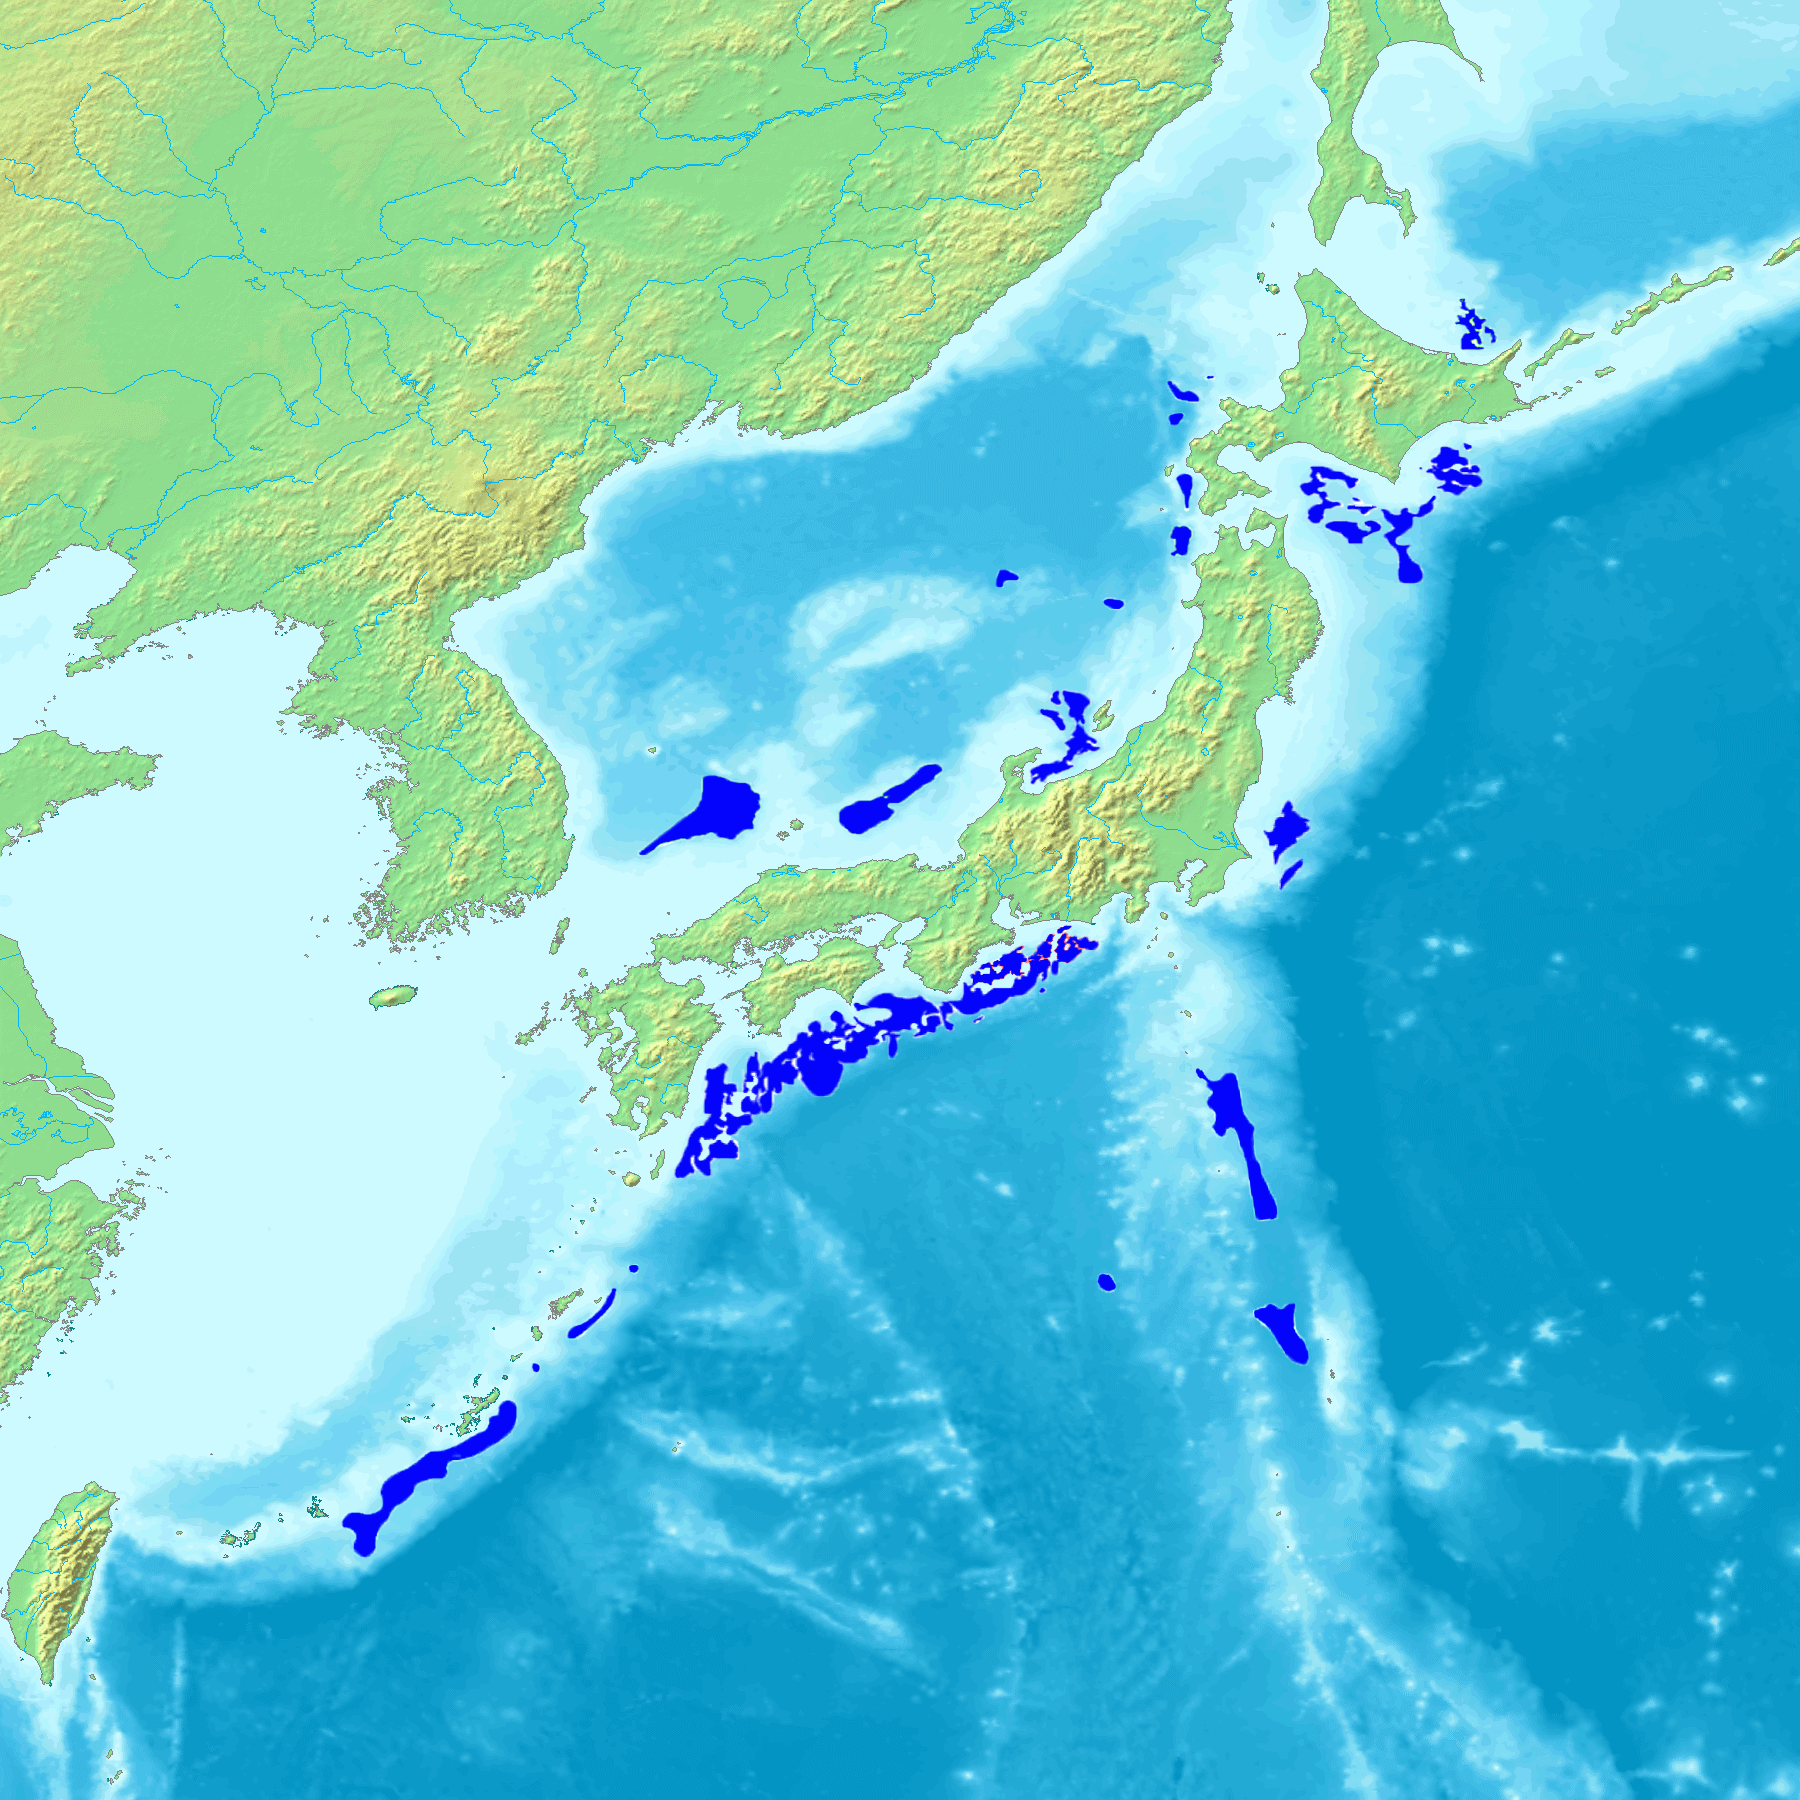 map of Japan with methane hydrate reserves around the country highlighted